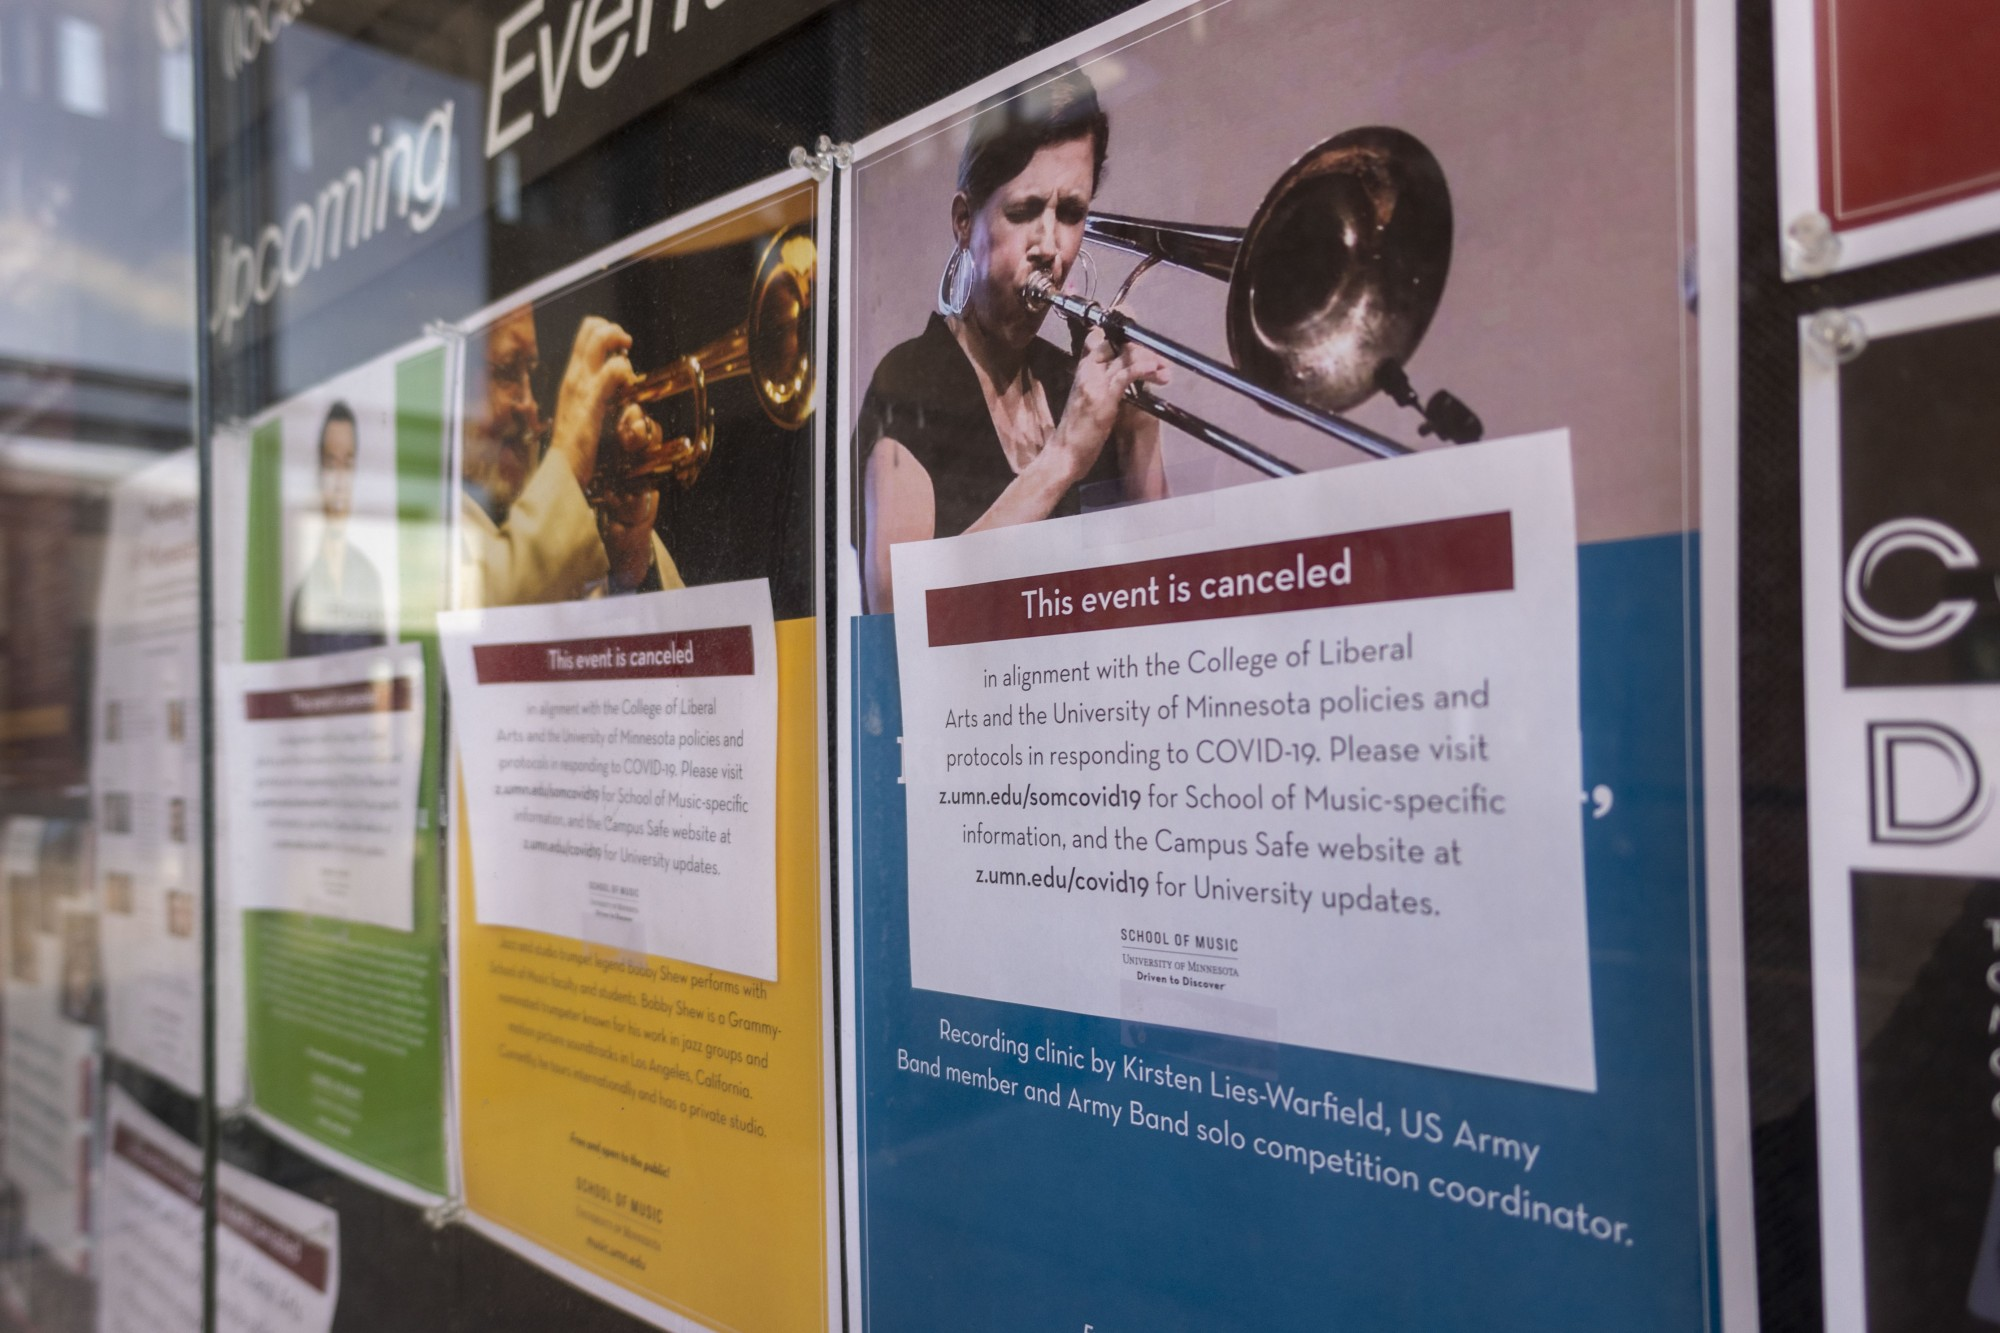 Flyers for events canceled in the wake of the Covid-19 pandemic are seen outside the Rarig Center on Saturday, March 21.